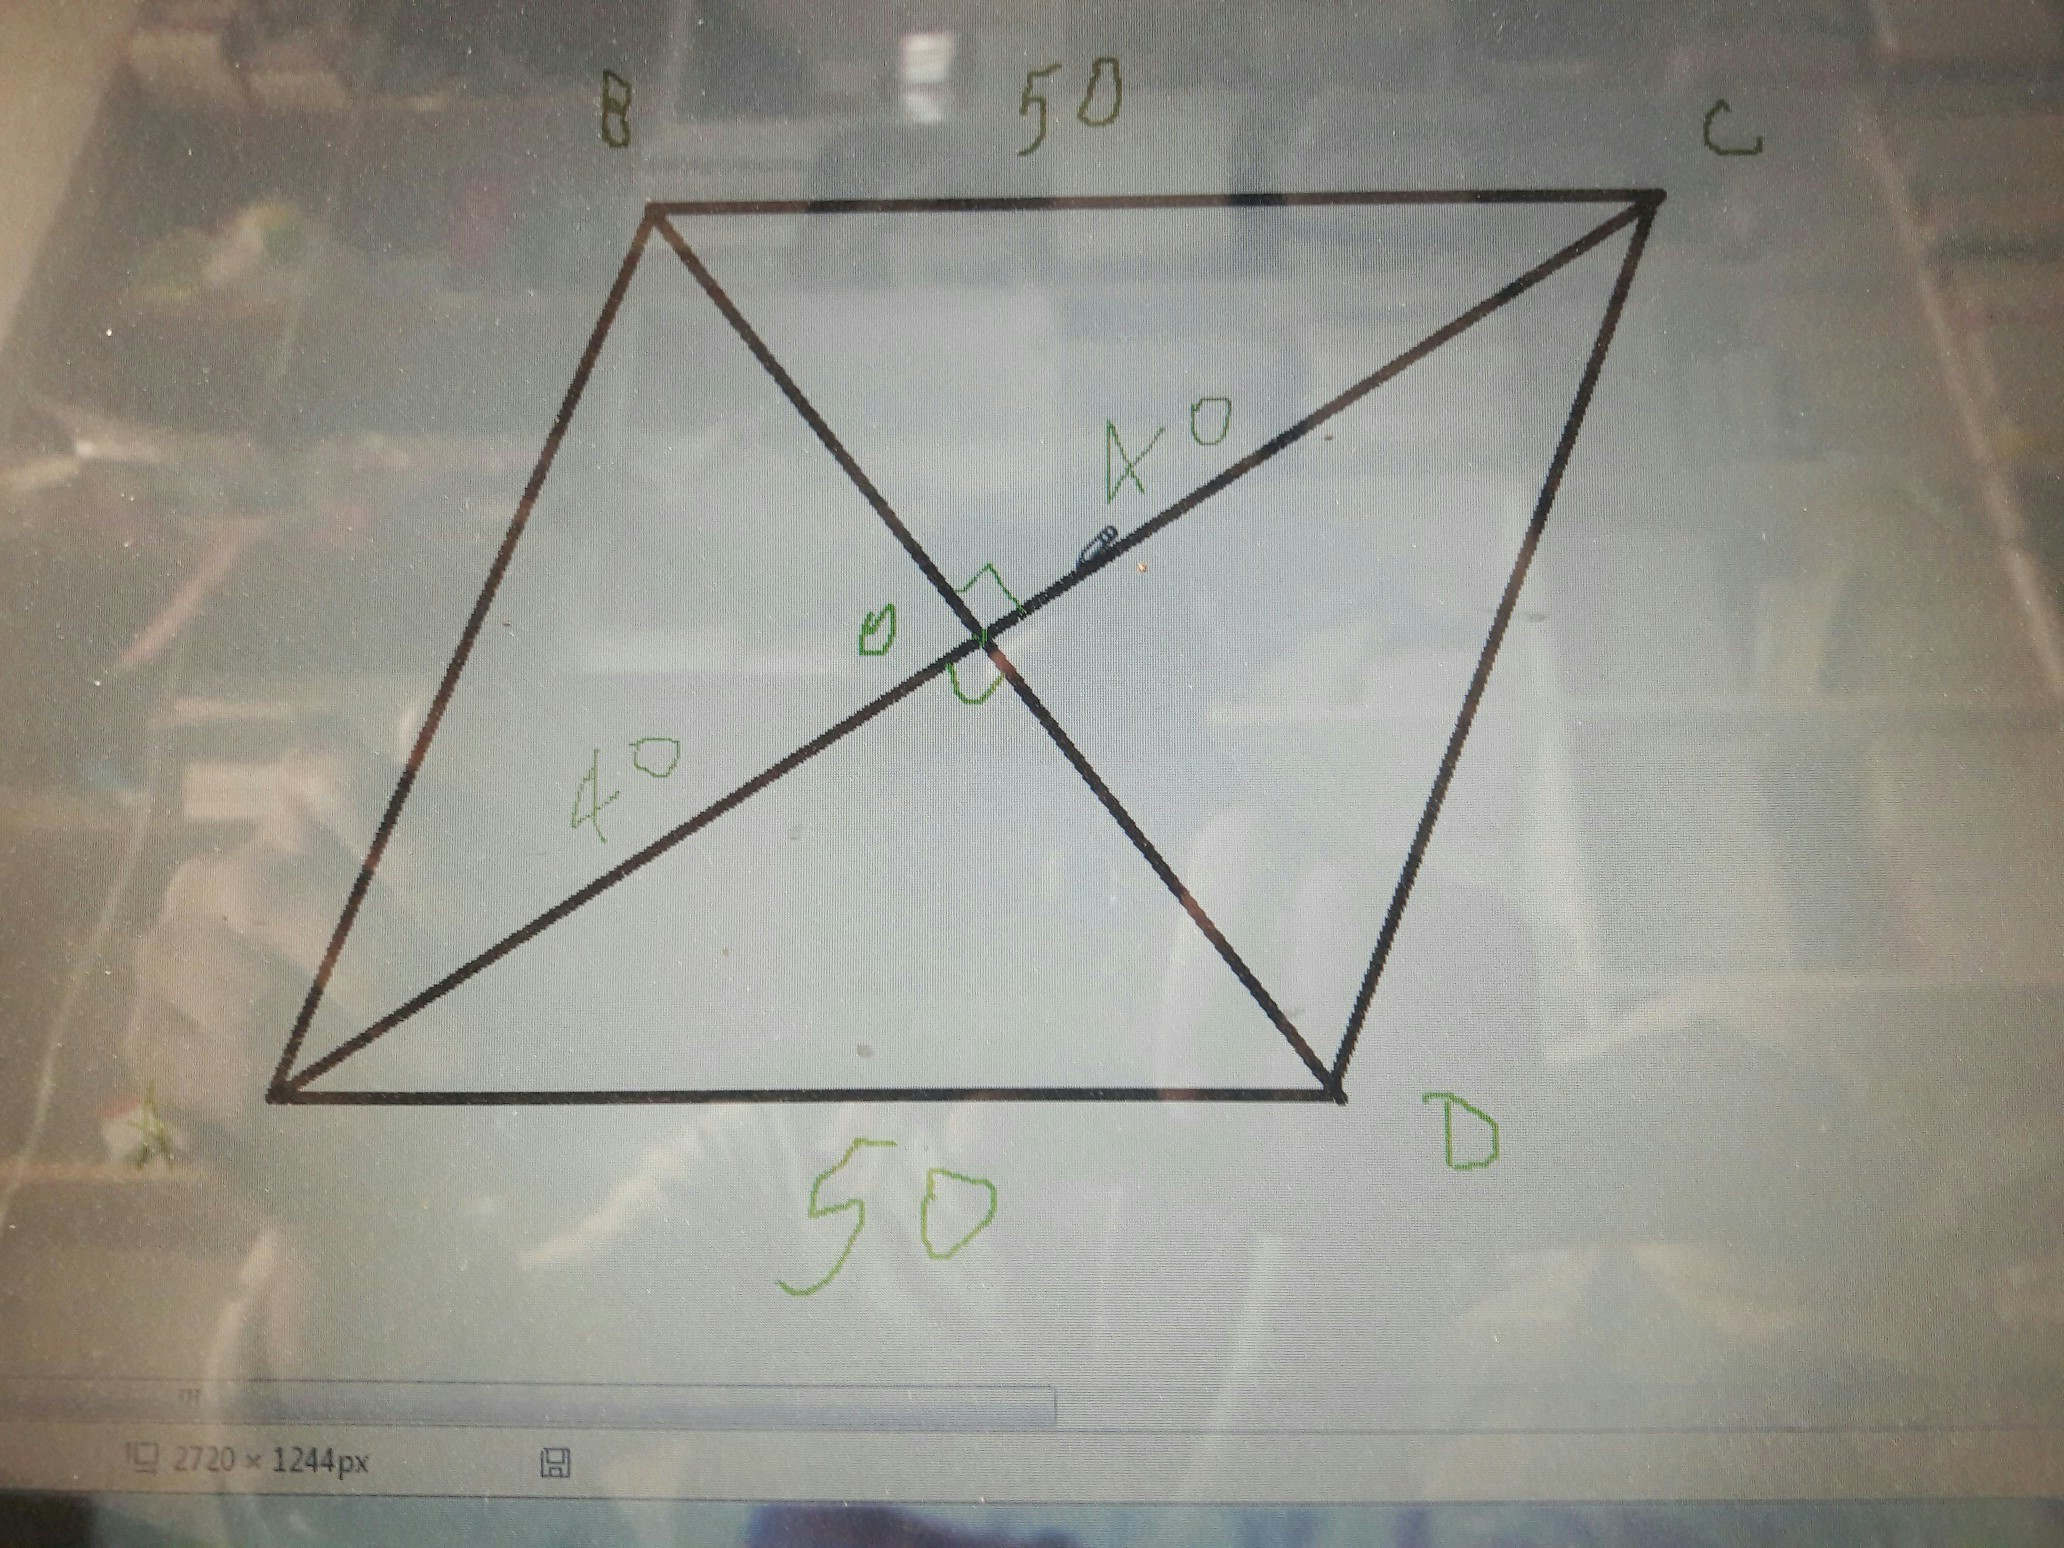 Find The Area Of Rhombus Whose Perimeter Is 200m And One